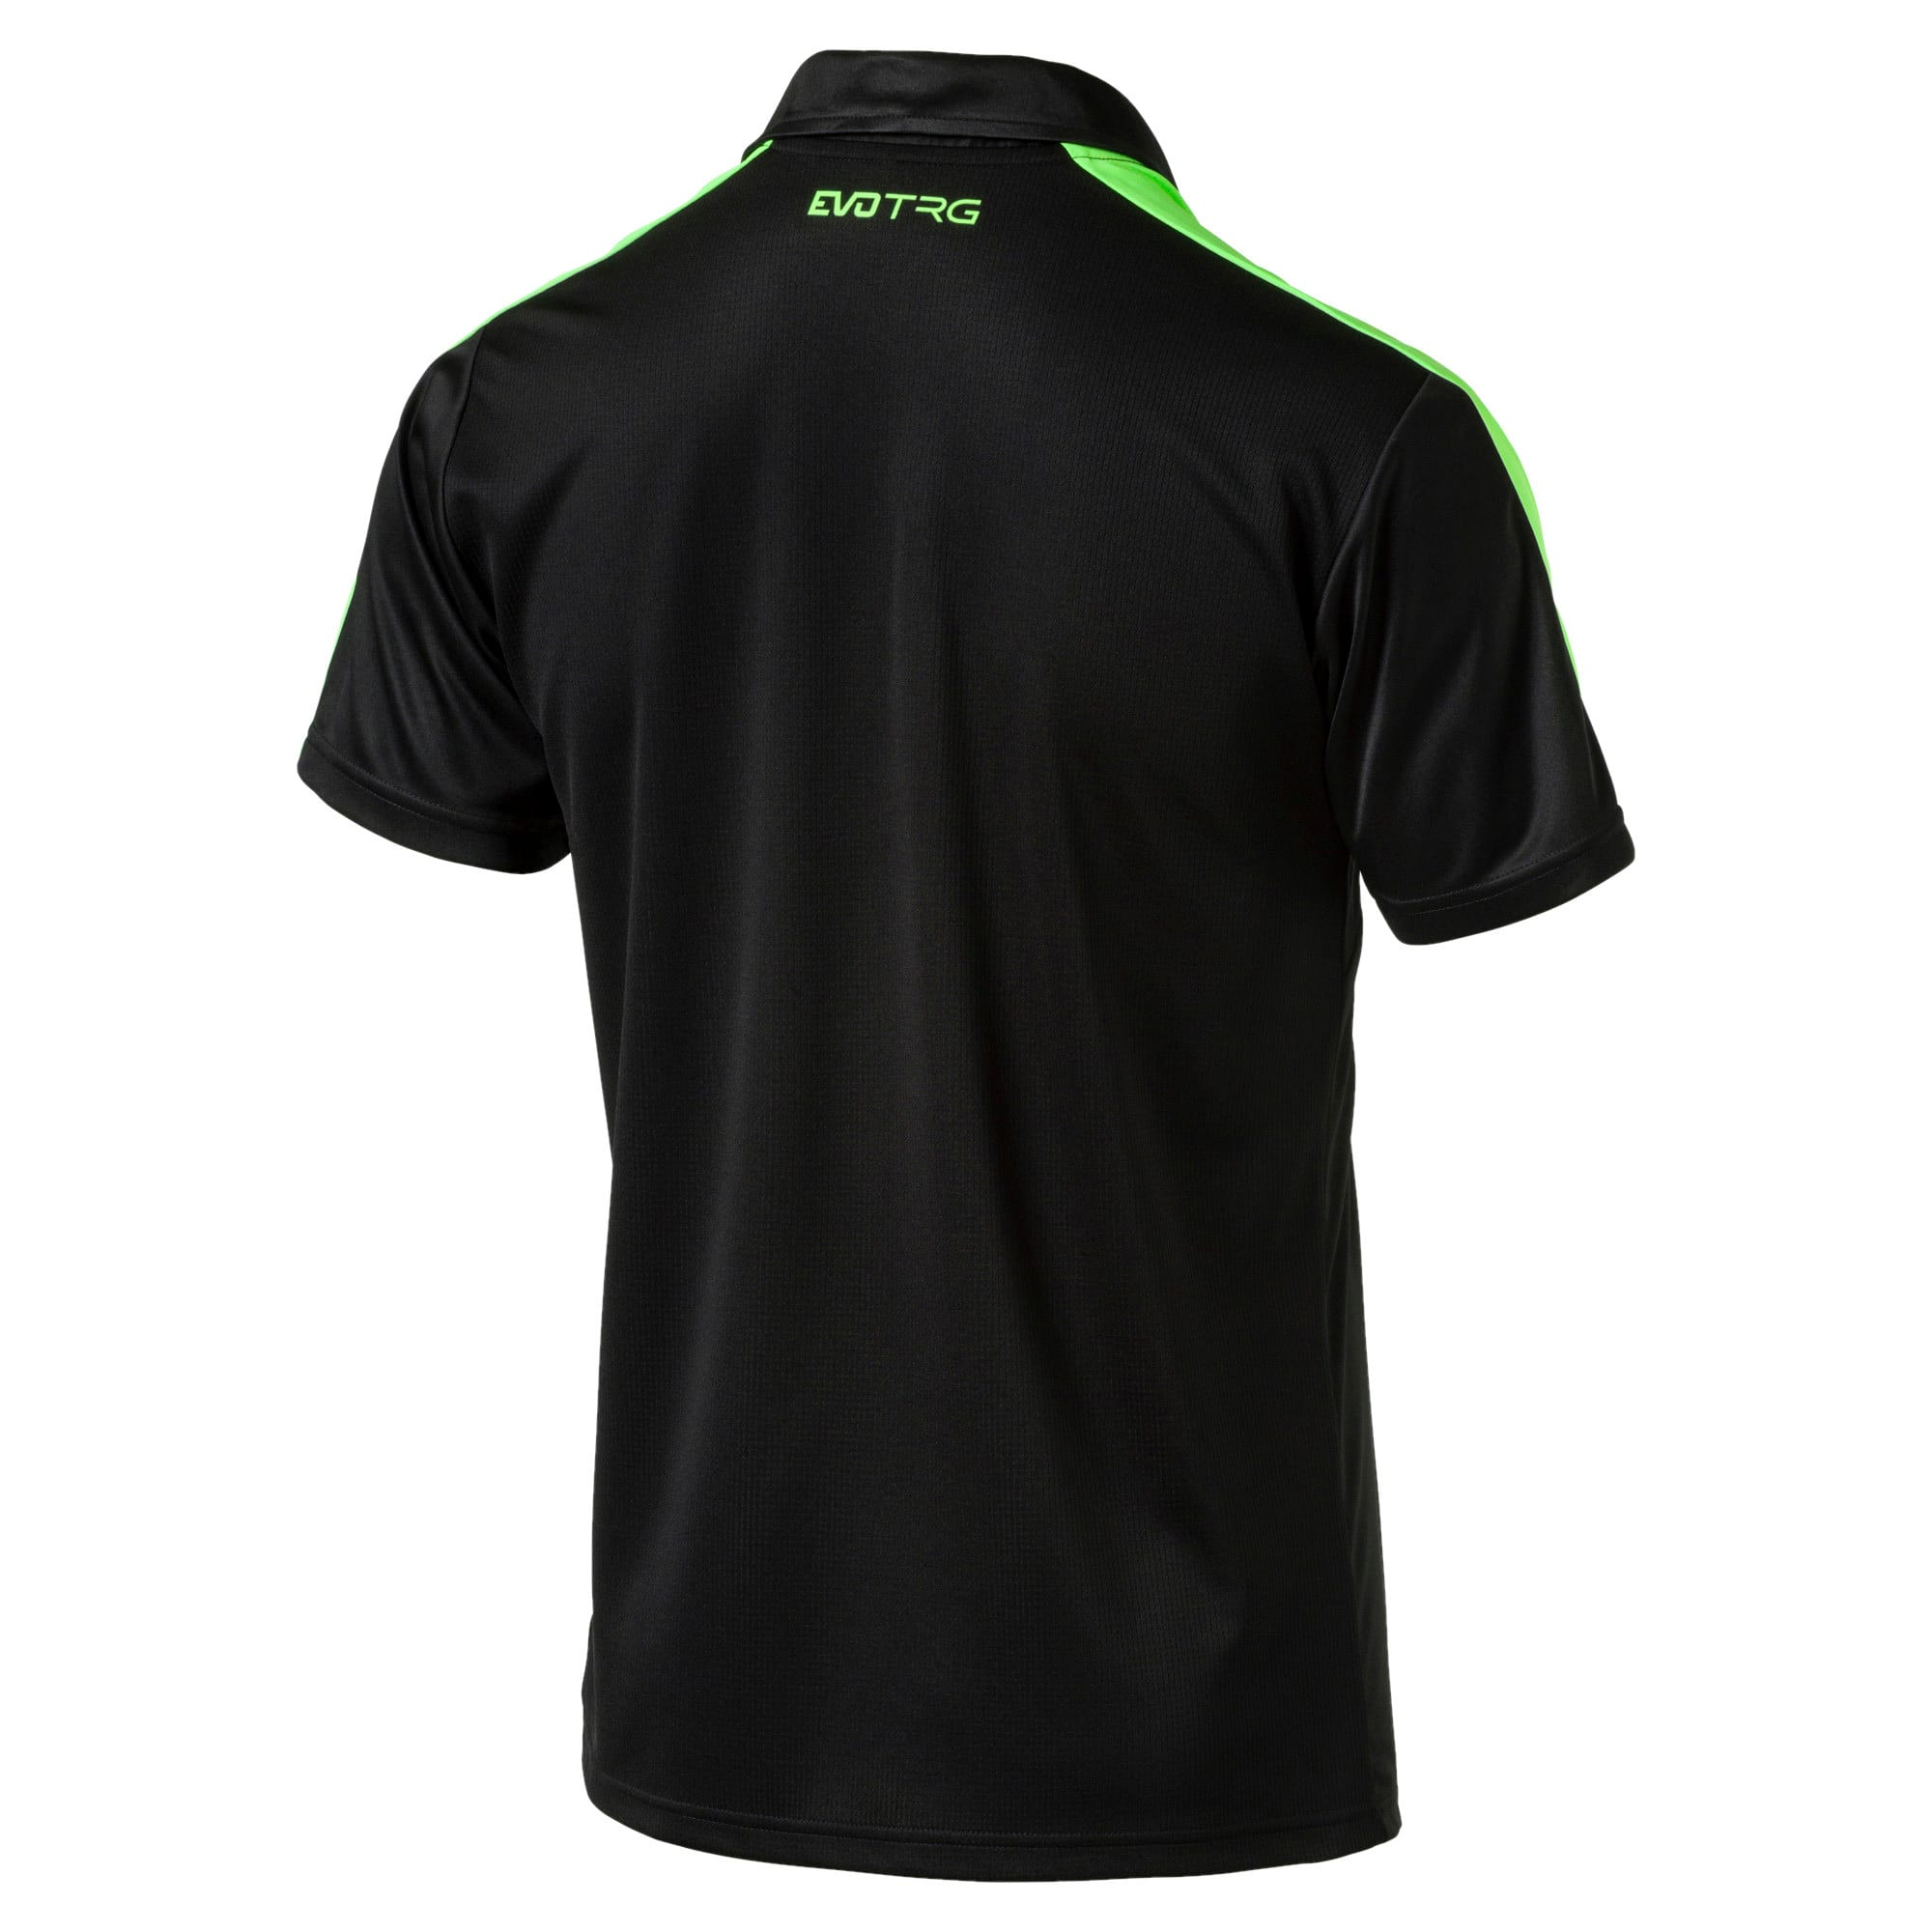 Thumbnail 5 of IT evoTRG Polo, Puma Black-Green Gecko, medium-IND